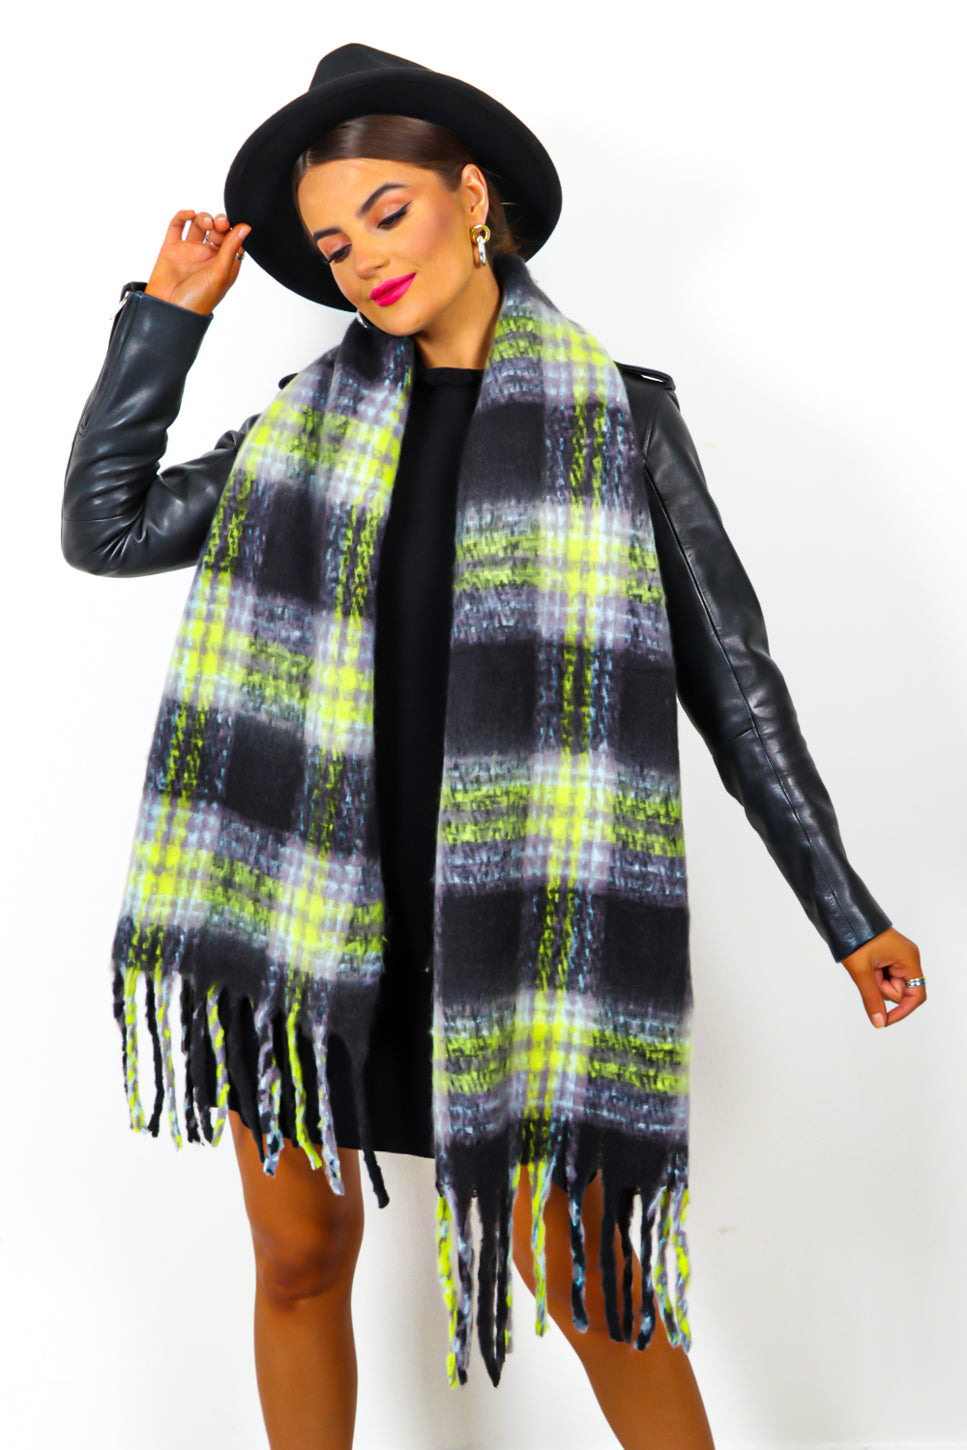 Check Mate - Black Lime Checked Scarf